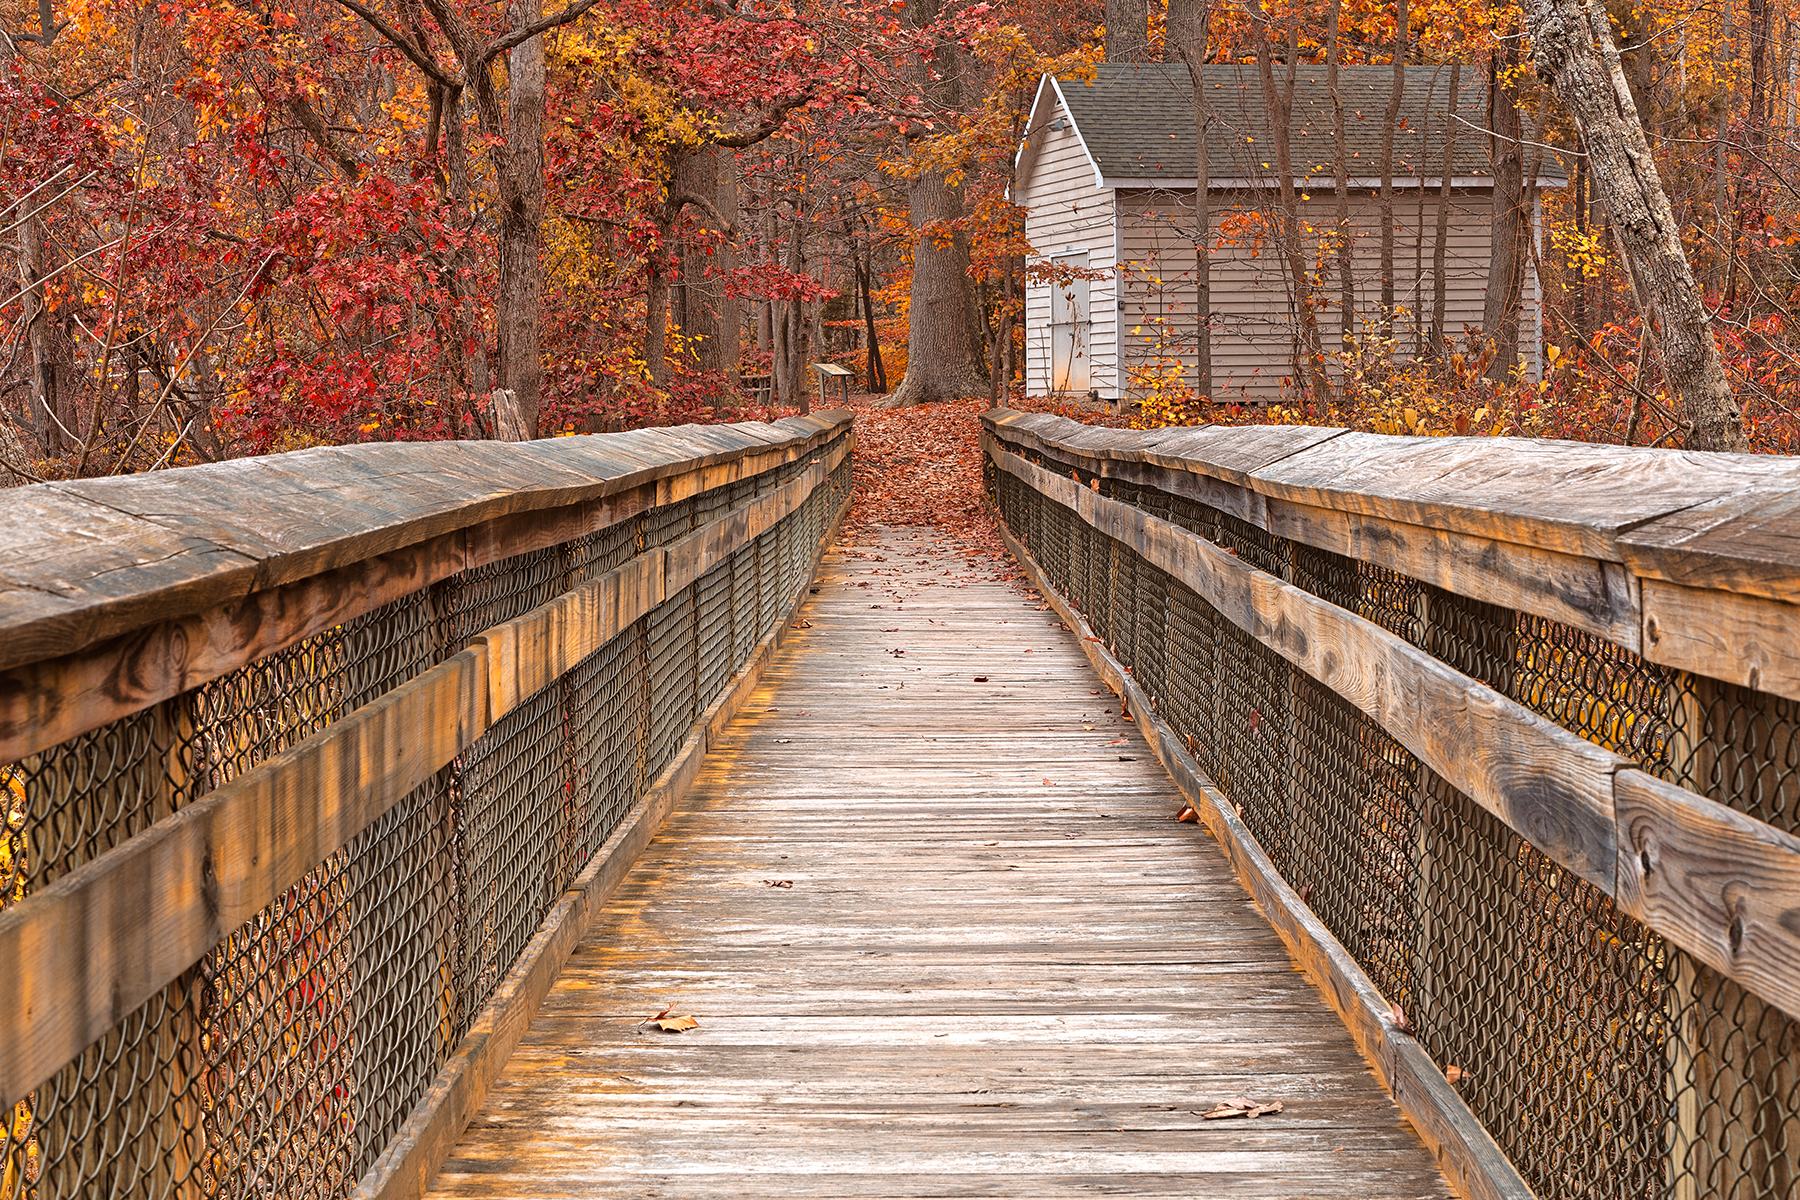 Rustic Autumn Boardwalk - Ruby Gold HDR, Age, Pretty, Shade, Shack, HQ Photo